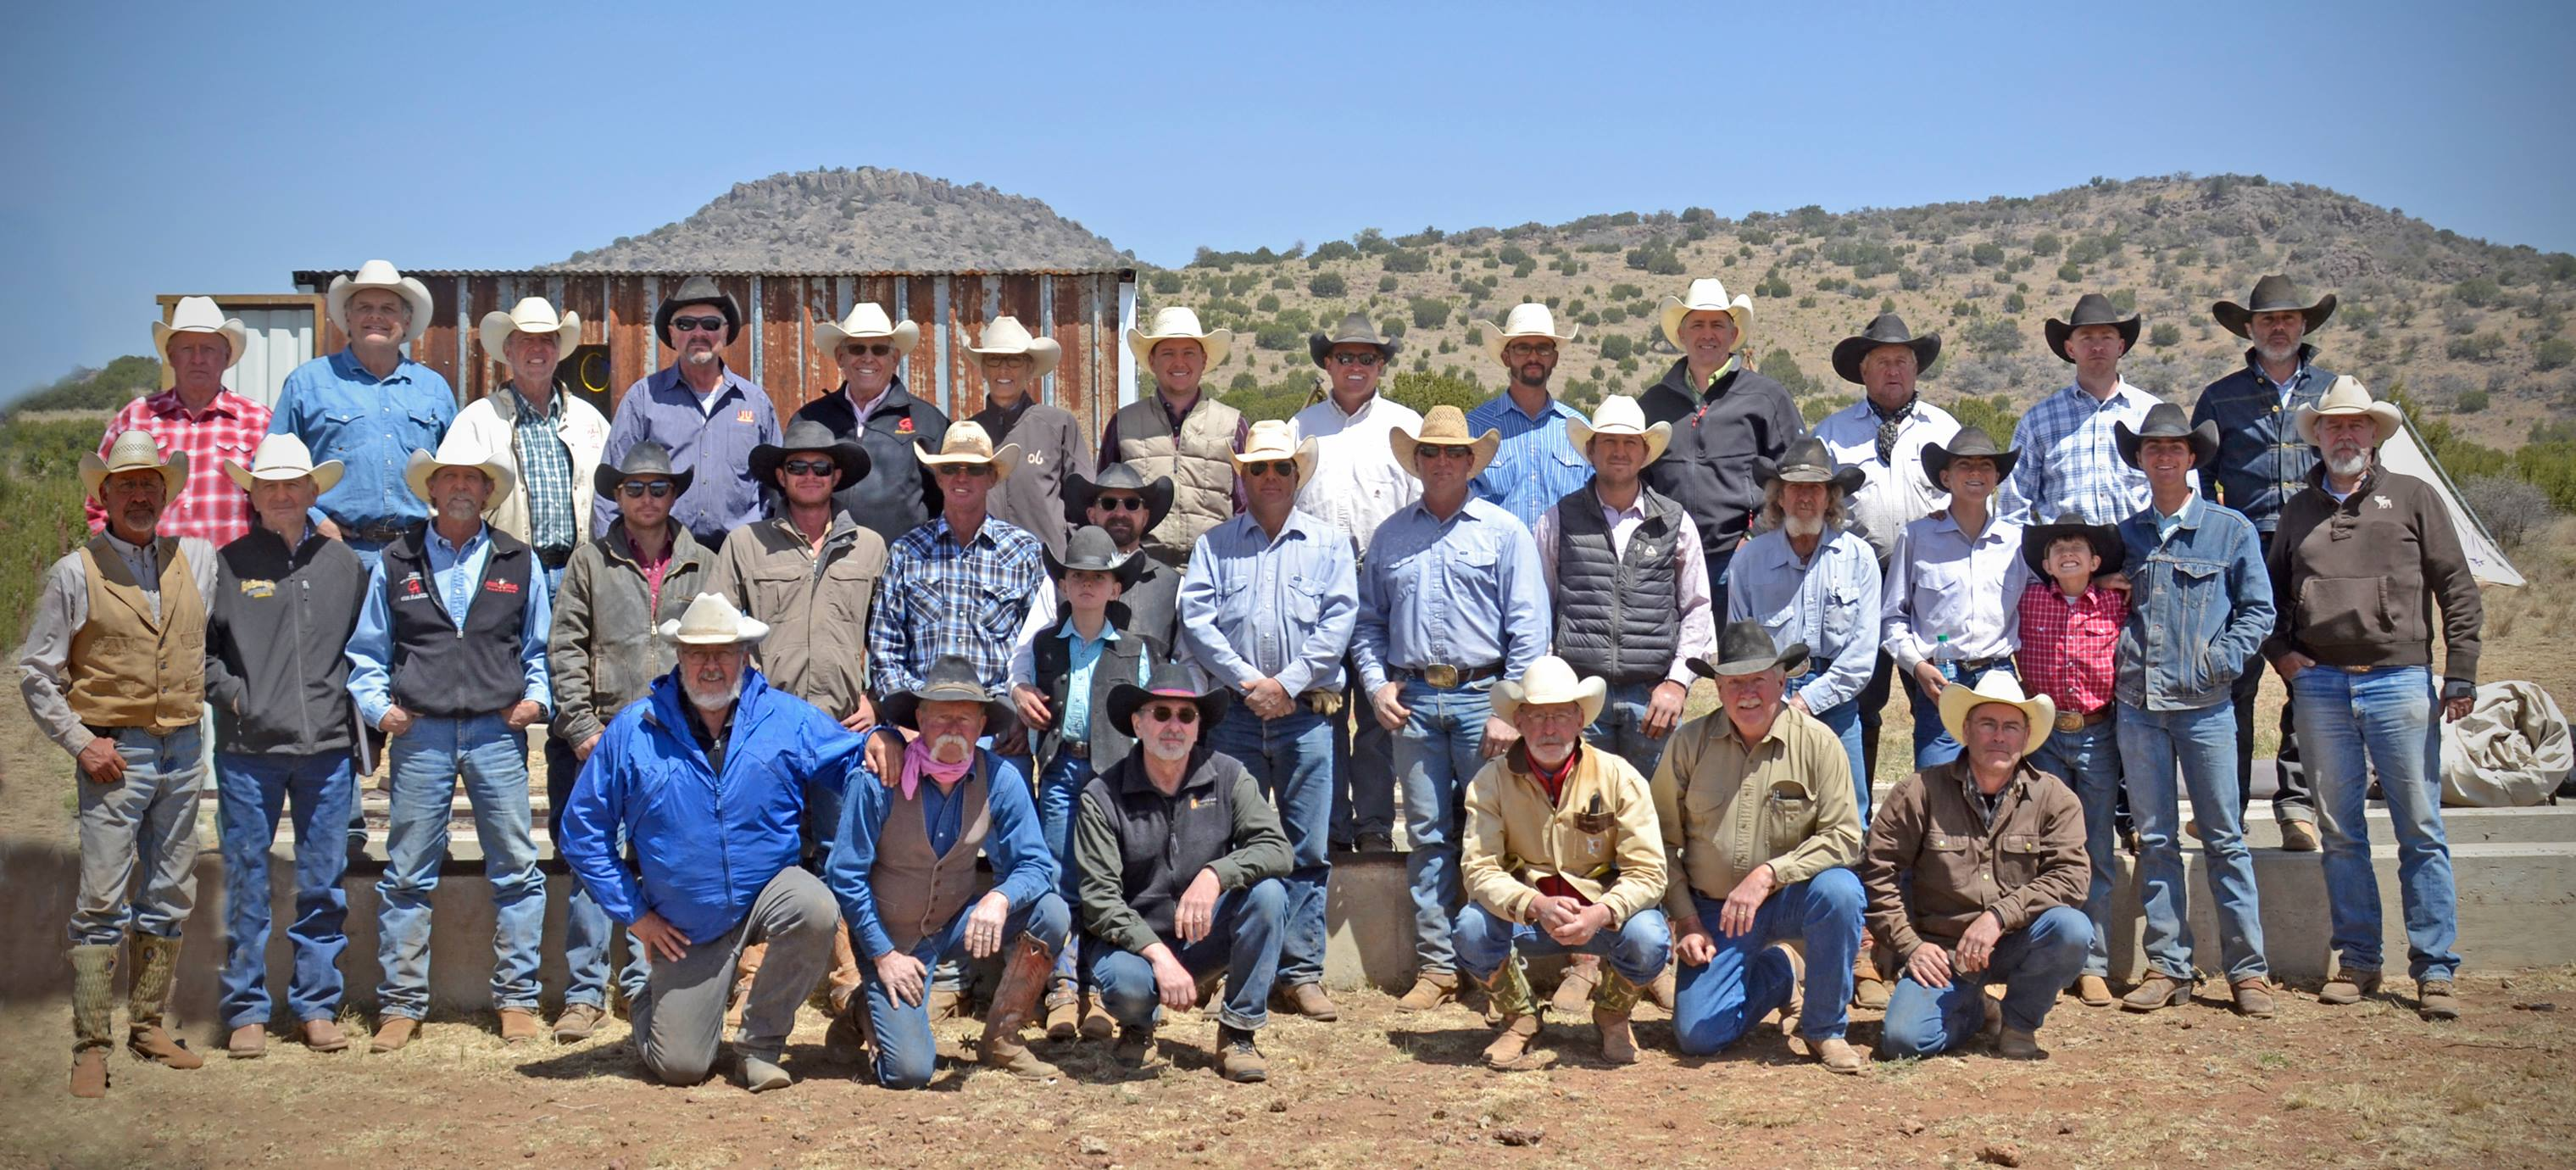 1 CAA Trail Ride, 2018 at 06 Ranch Cowboys